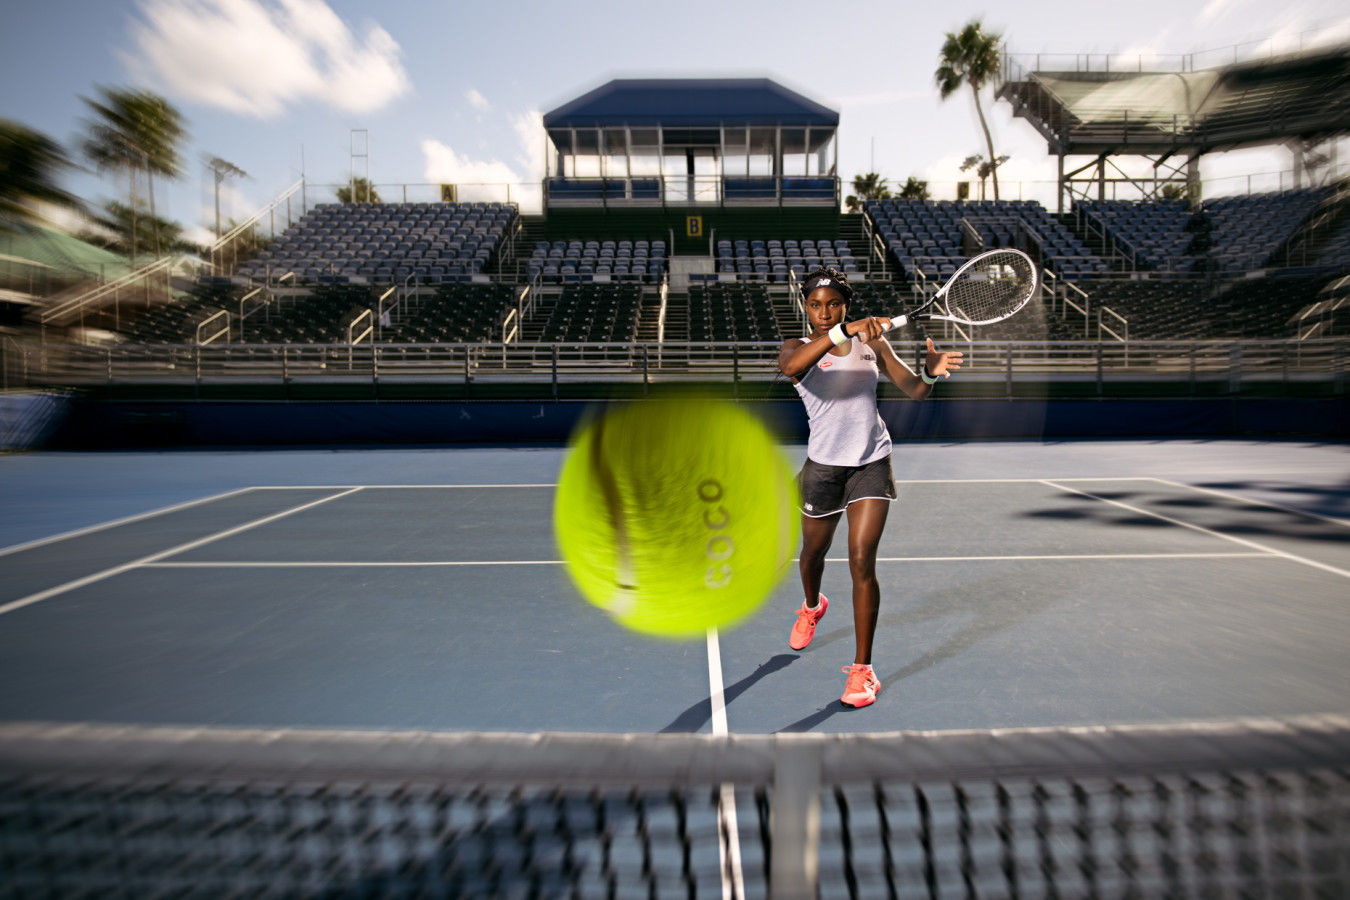 Coco Gauff - Sports and Fitness Tennis Photography